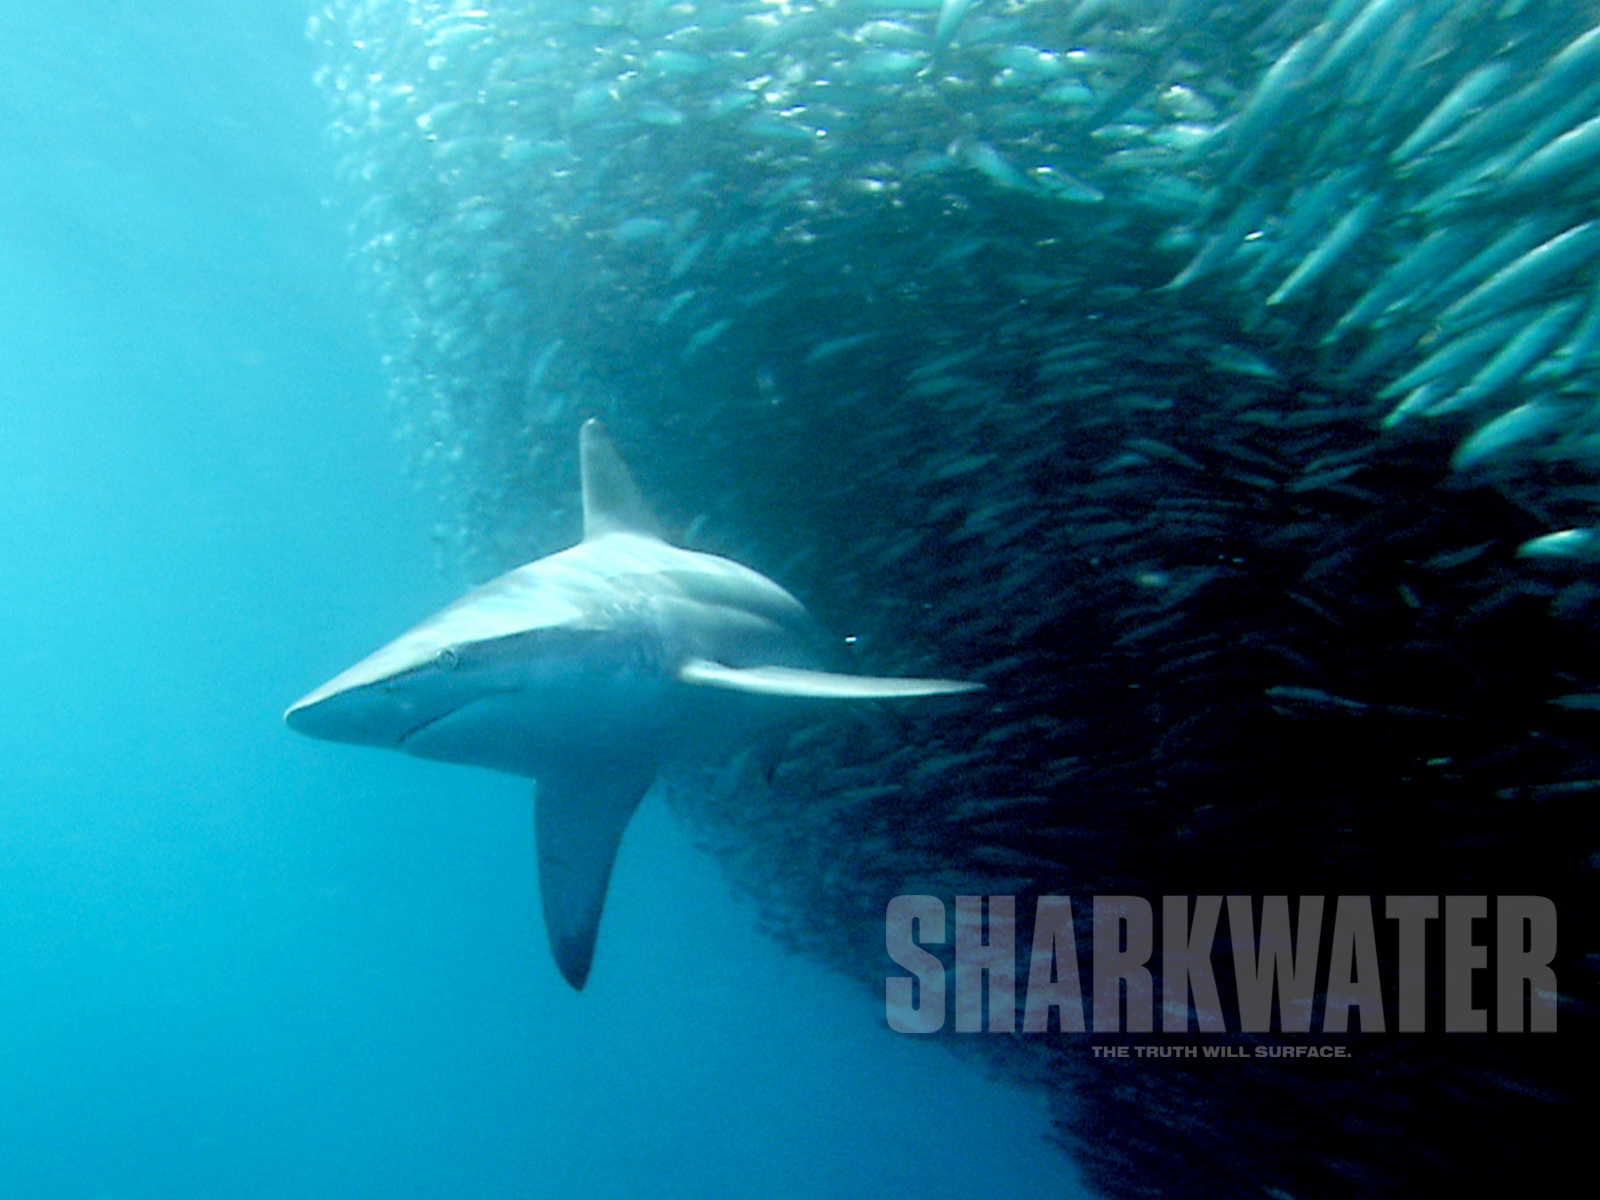 Revolution Wallpaper Hd Sharkwater Downloads Sharkwater